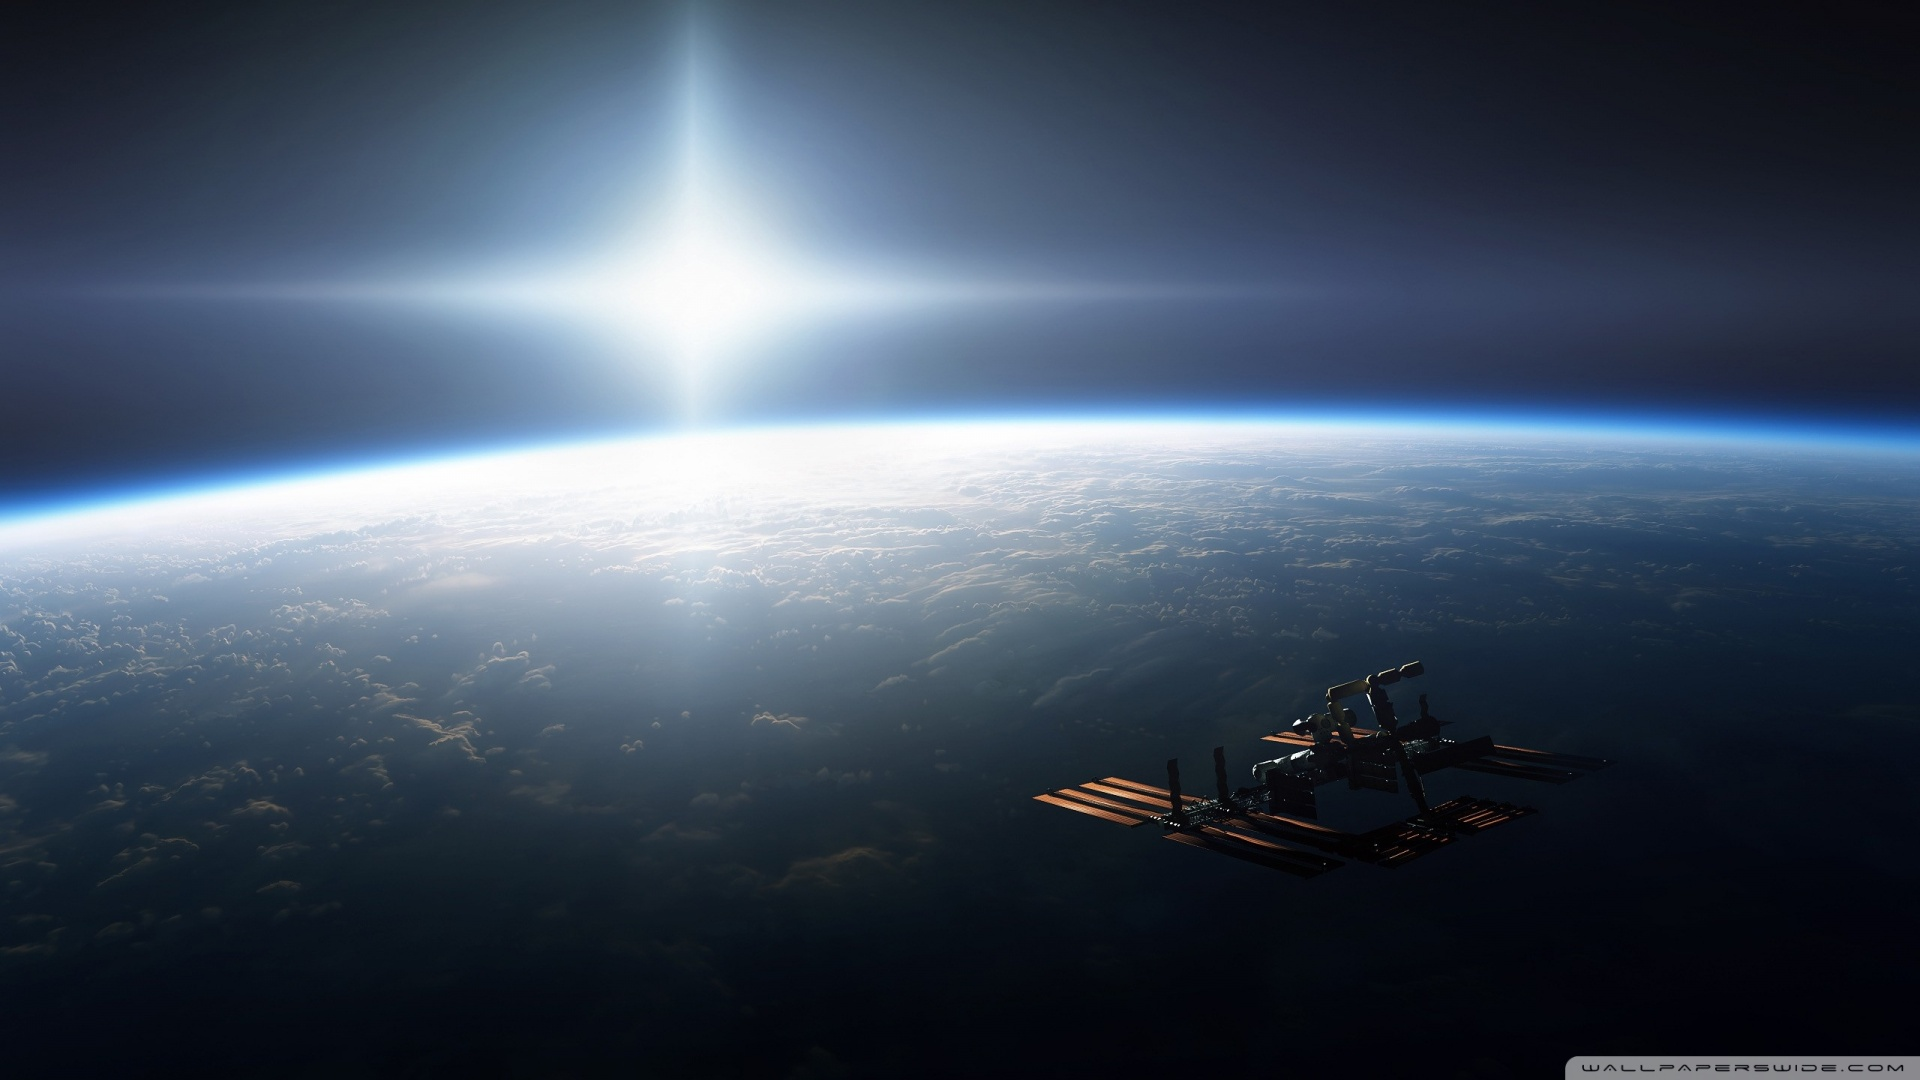 Space station 50158